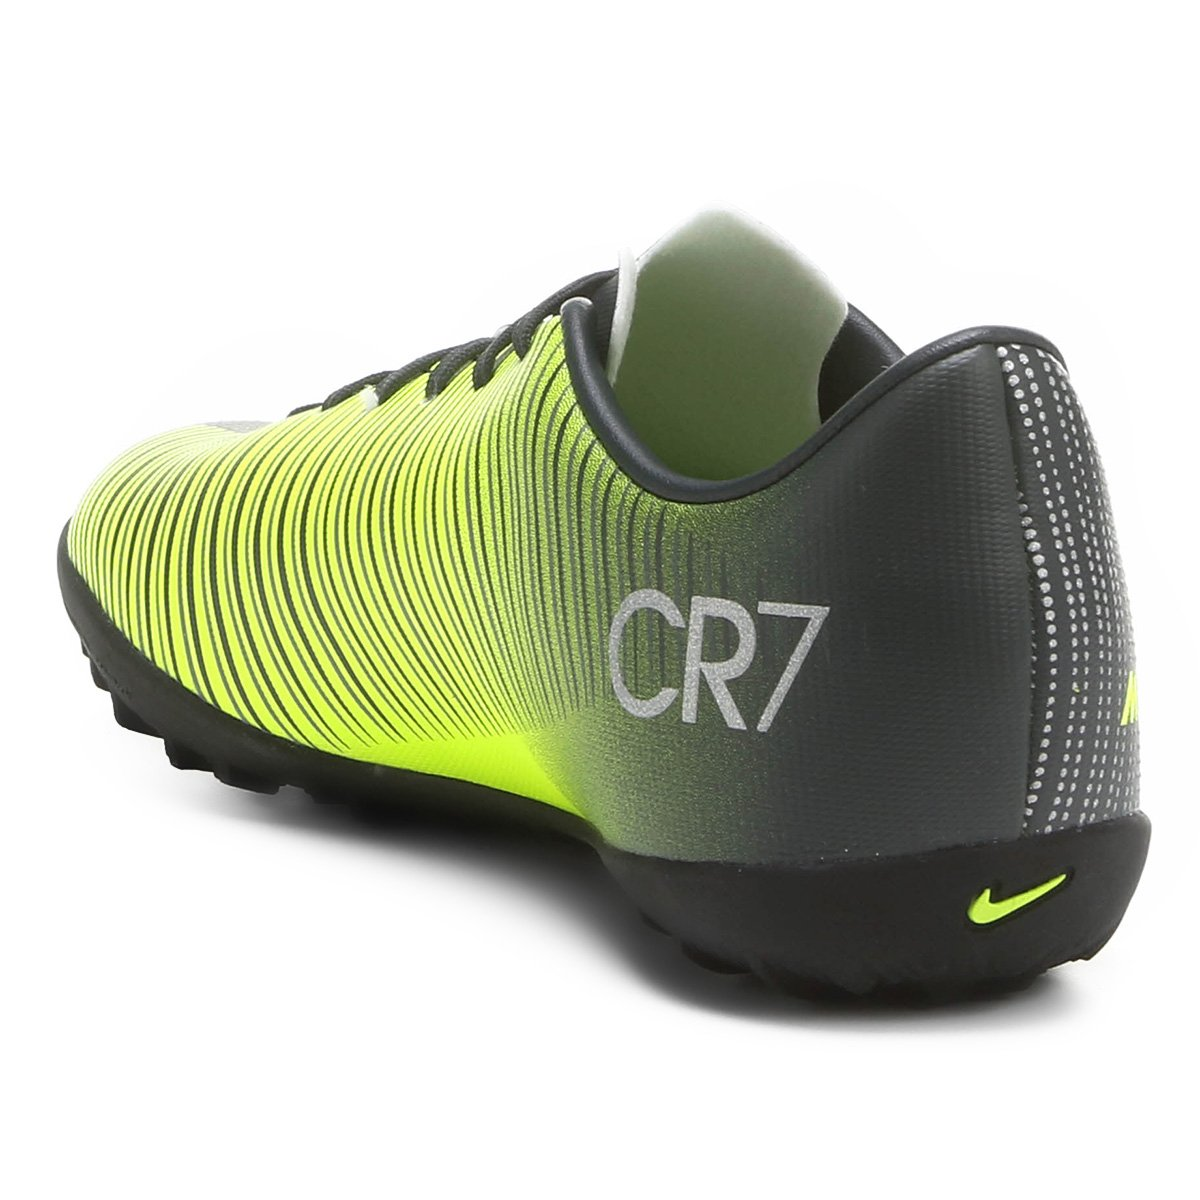 Chuteira Society Infantil Nike Mercurial X Victory 6 CR7 TF - Compre ... 750a7012948af